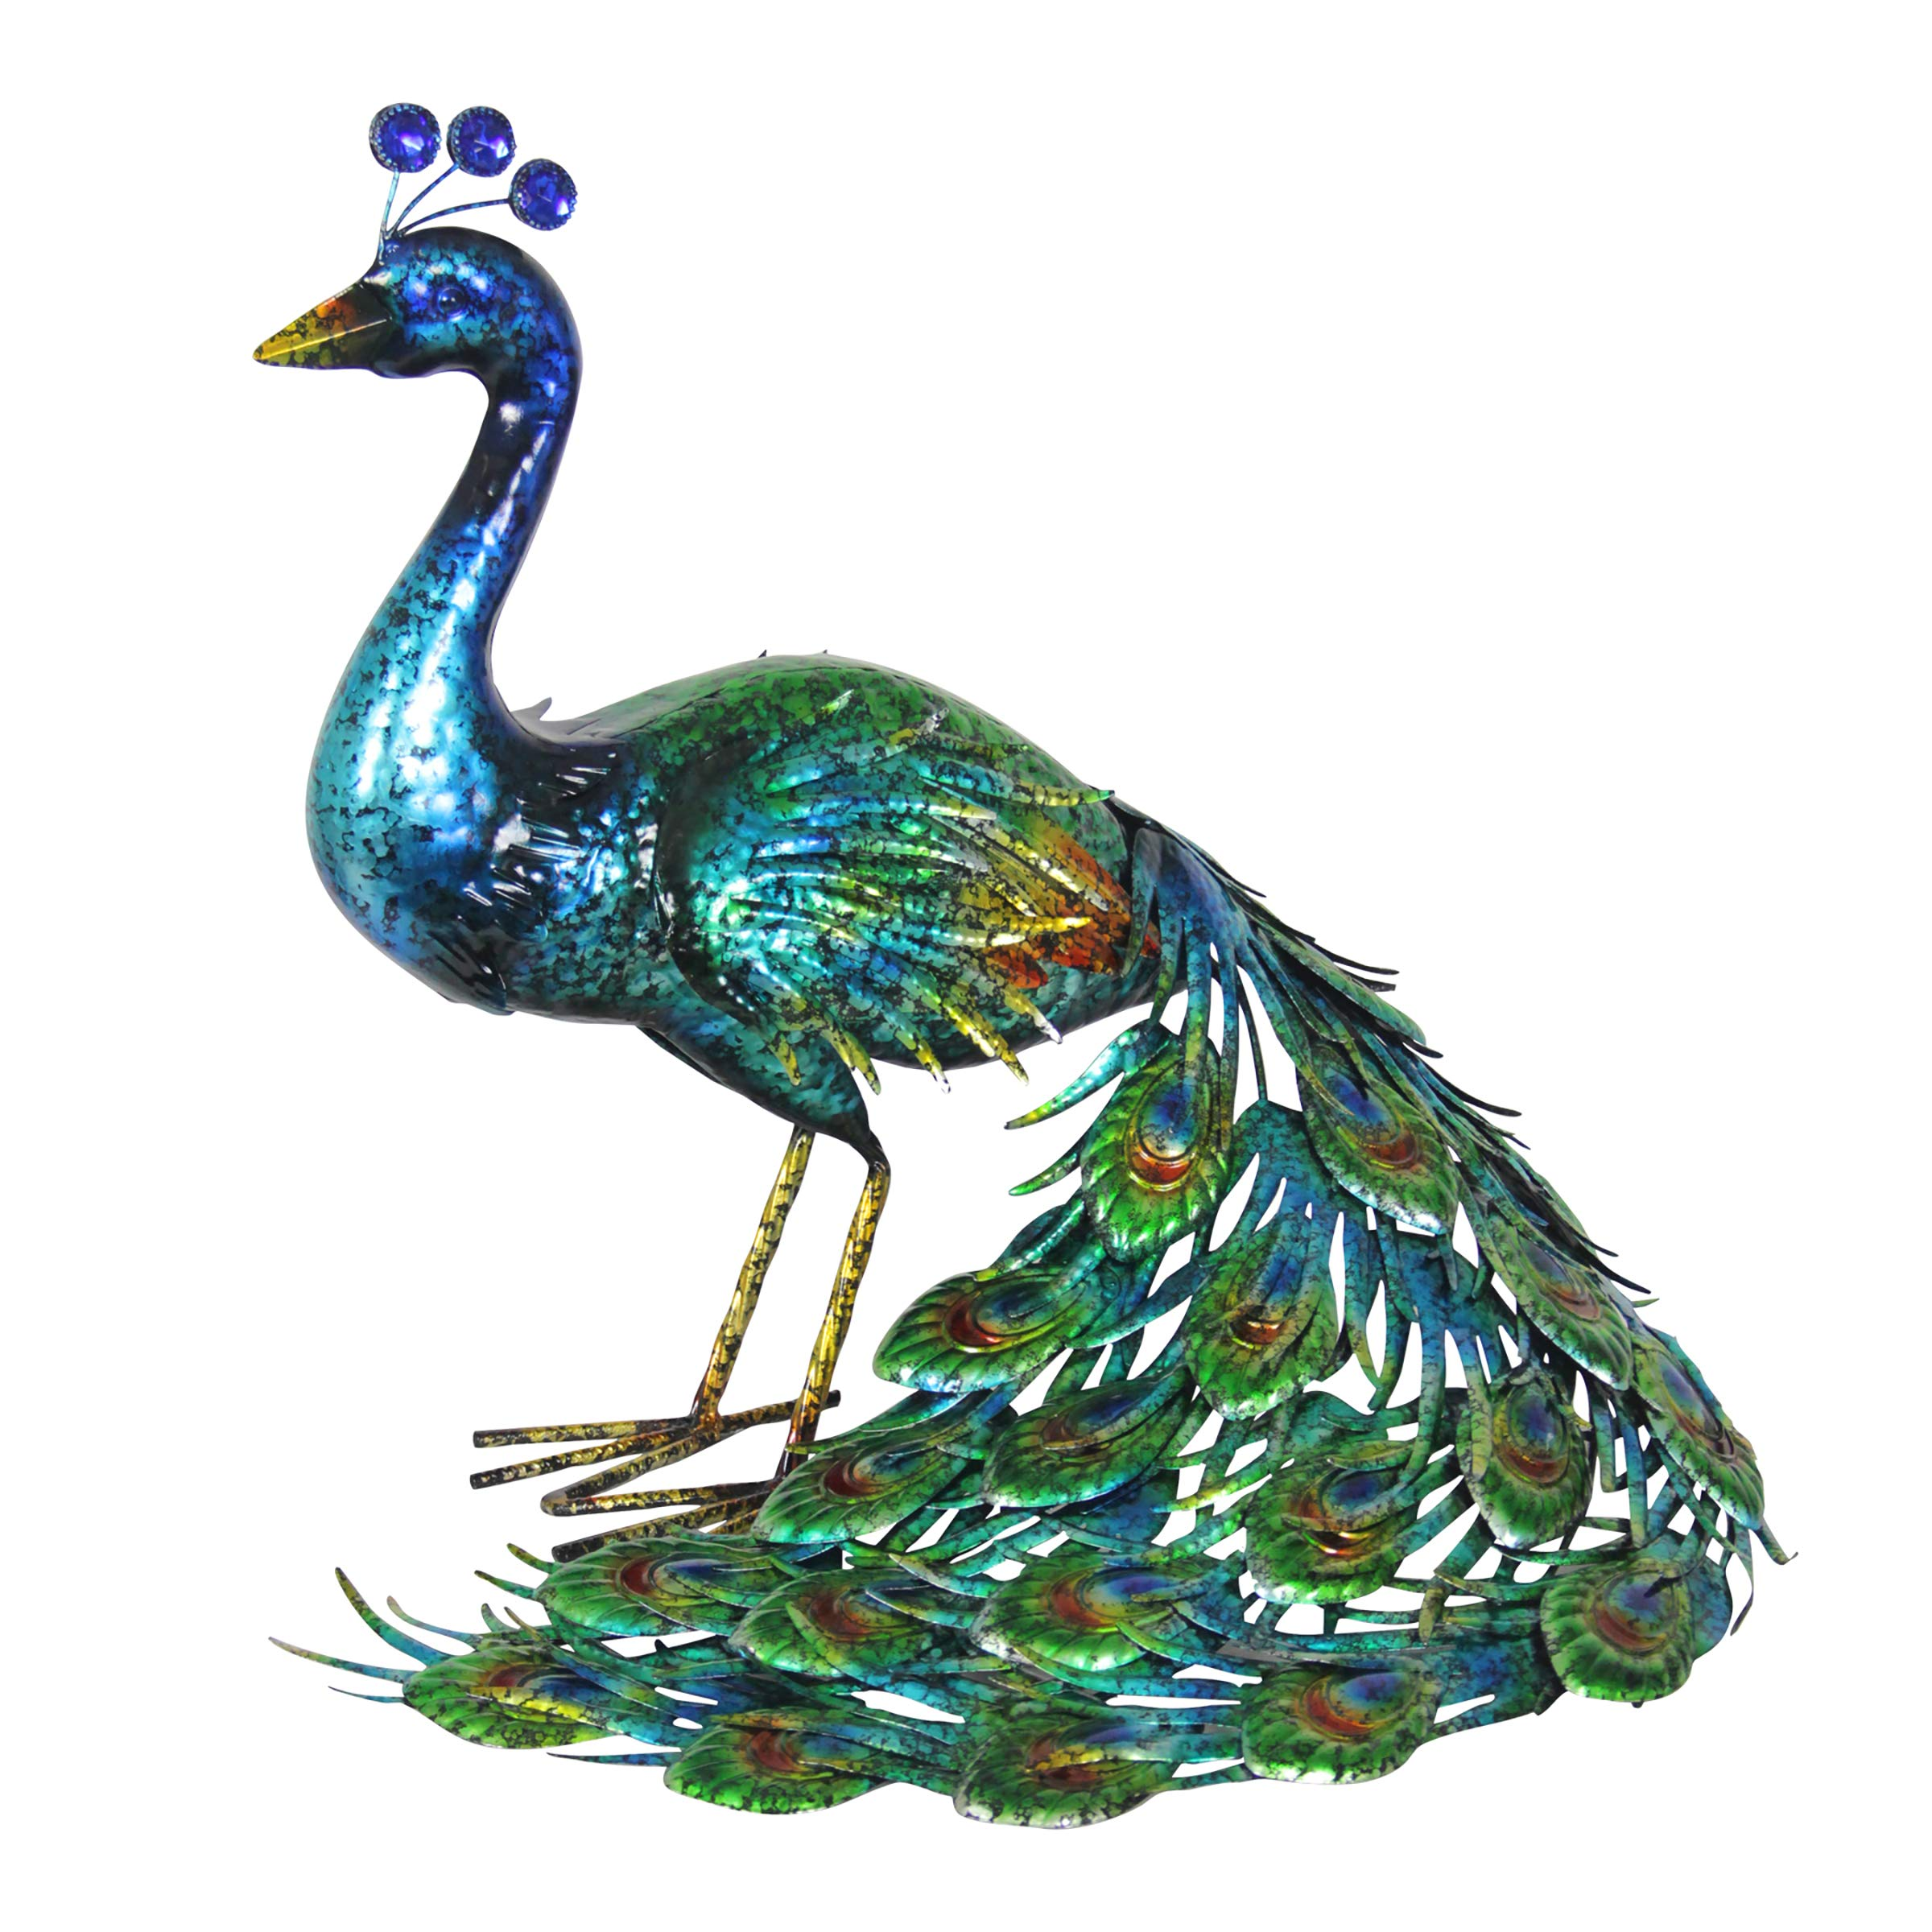 Exhart Peacock Garden Statue, Hand-Painted Metallic Blue Standing Peacock Art- Large 2ft Indoor/Outdoor Peacock Color Décor with UV-Treated Metal Artwork- Metal Peacock Décor, 15 x 24 Inches